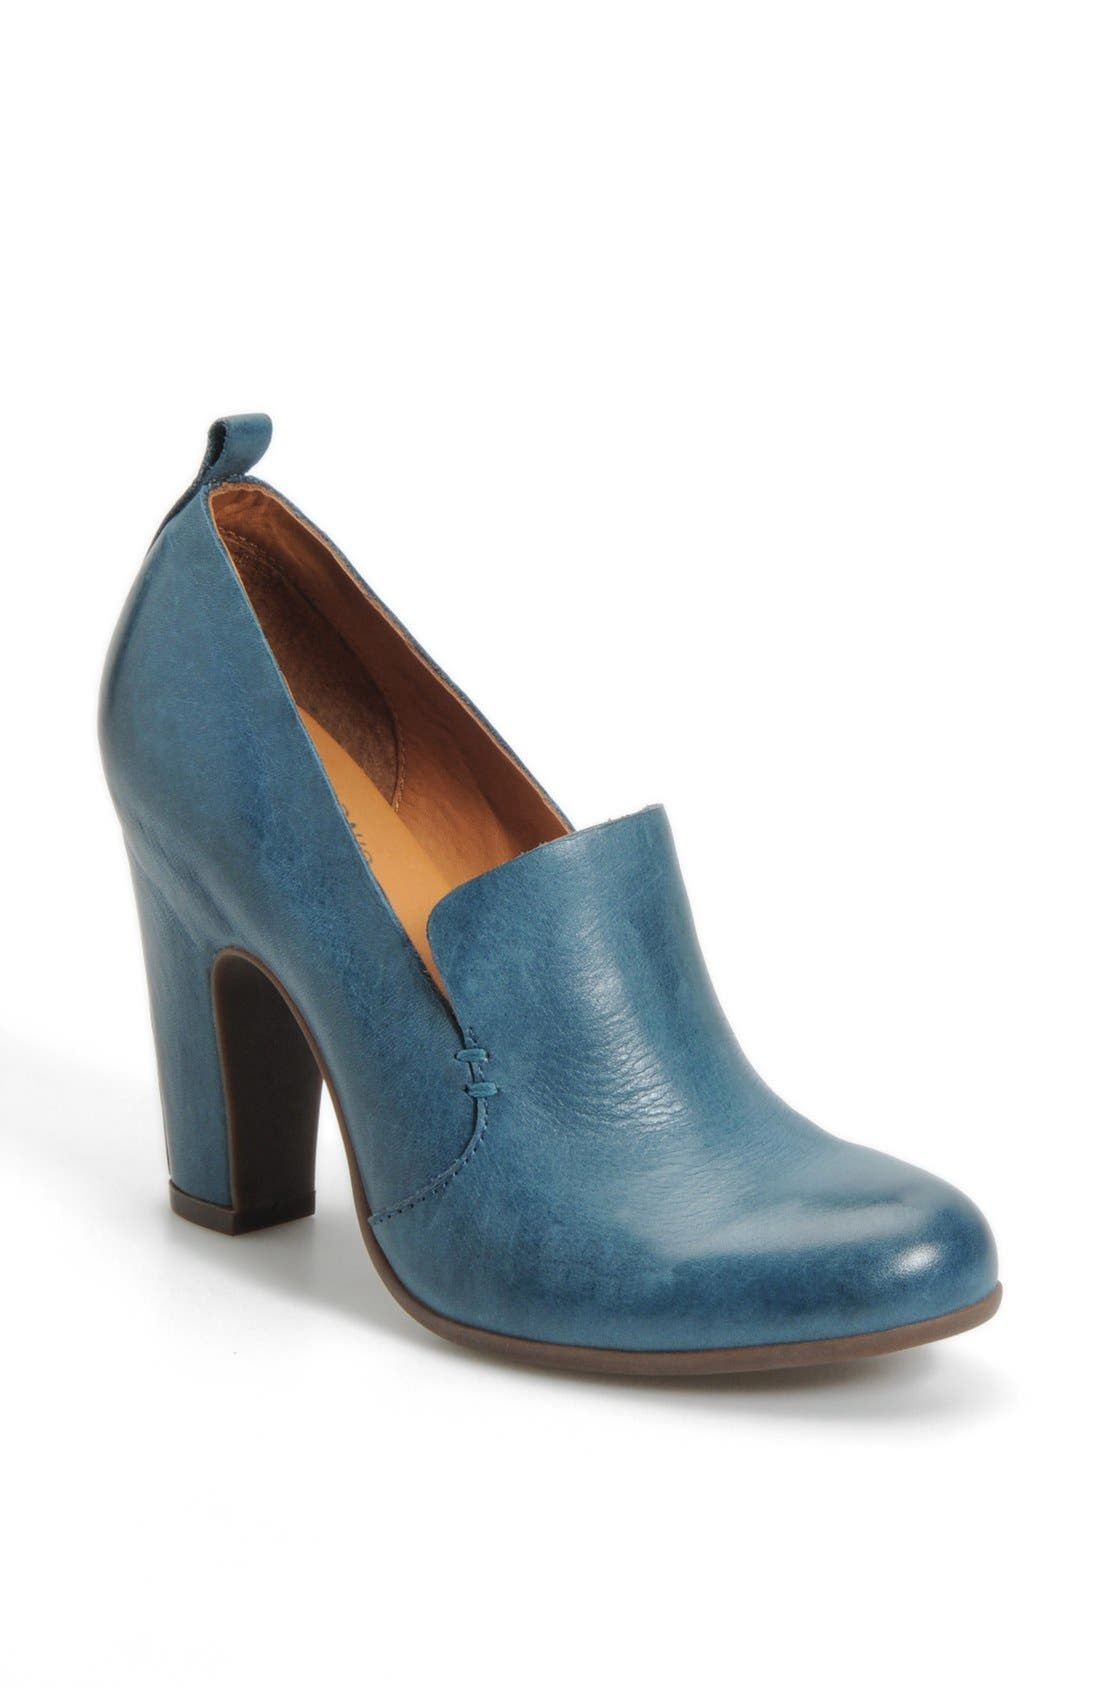 Main Image - Kork-Ease 'Harper' Pump